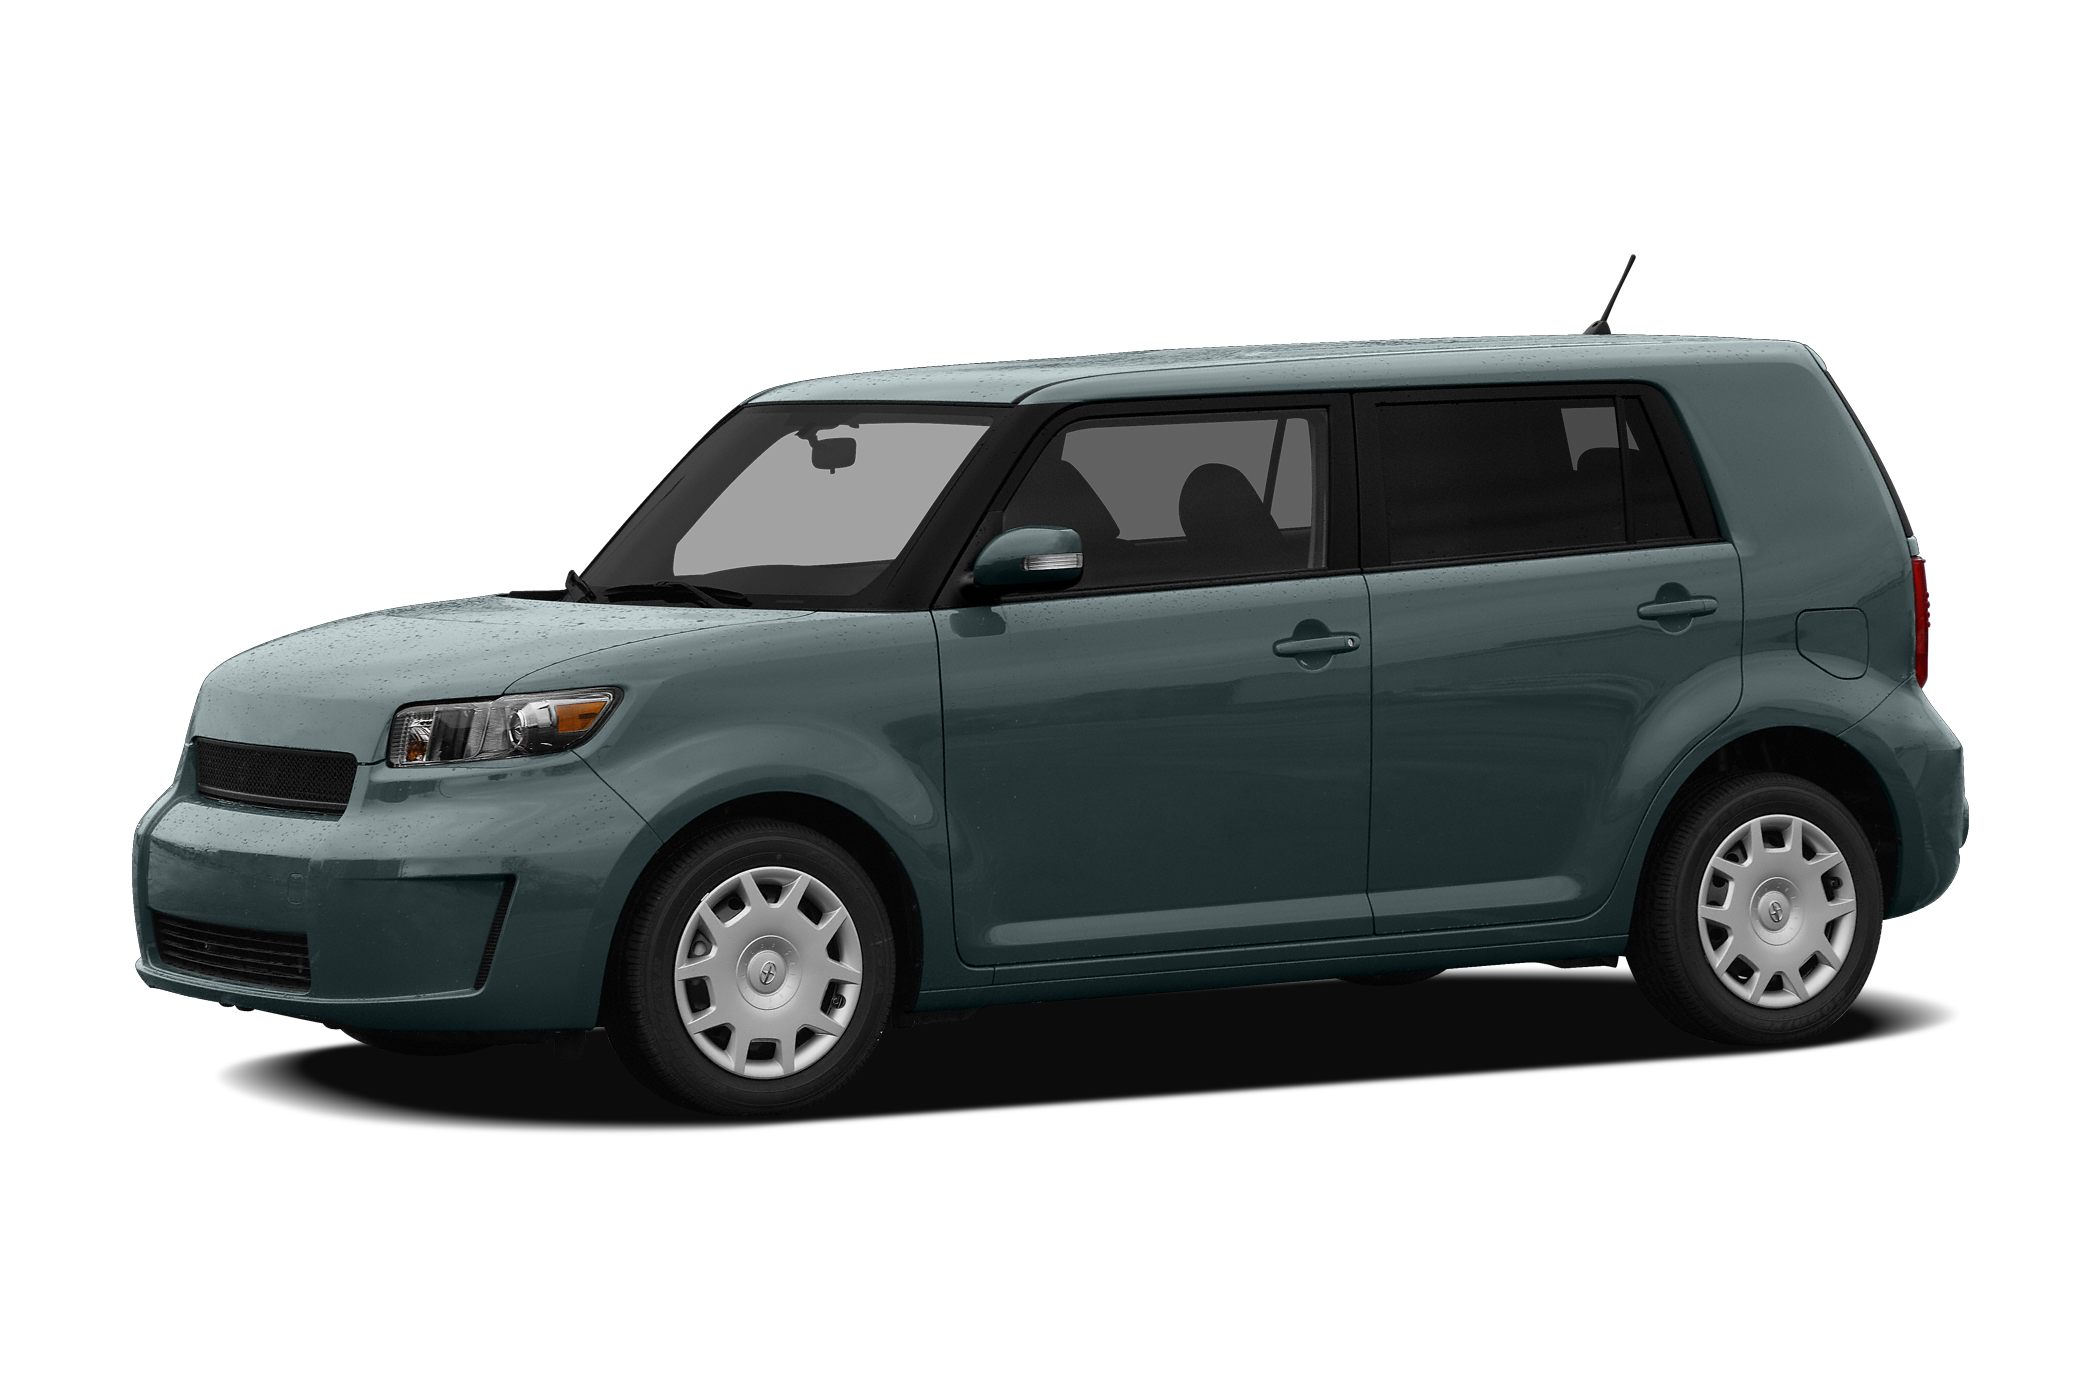 2008 Scion XB Wagon for sale in Anniston for $11,995 with 61,576 miles.